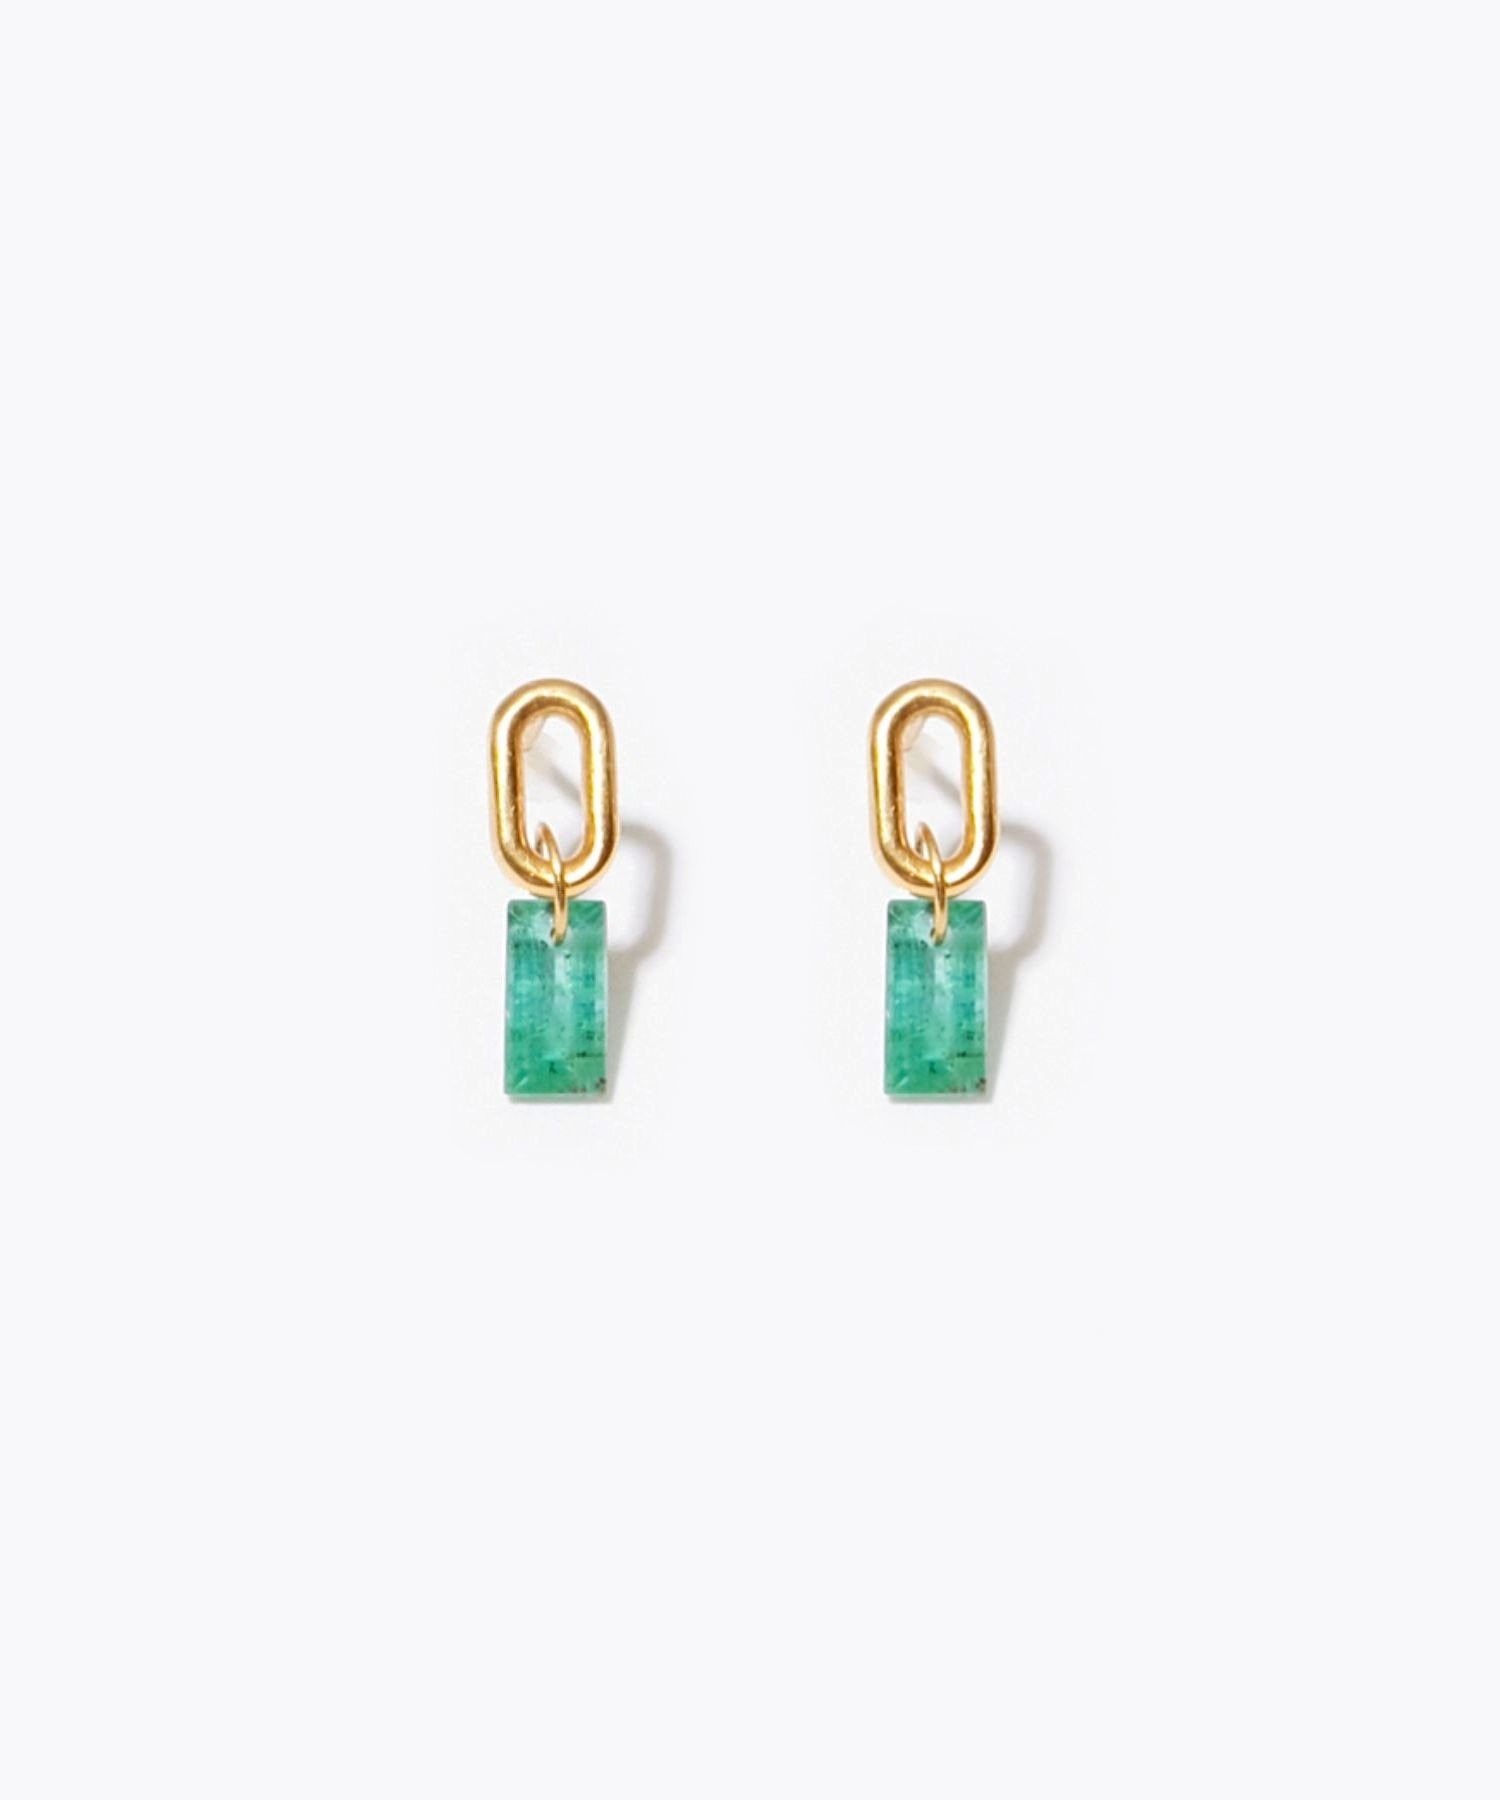 [eden] K10 rectangle emerald oval hoop pierced earring